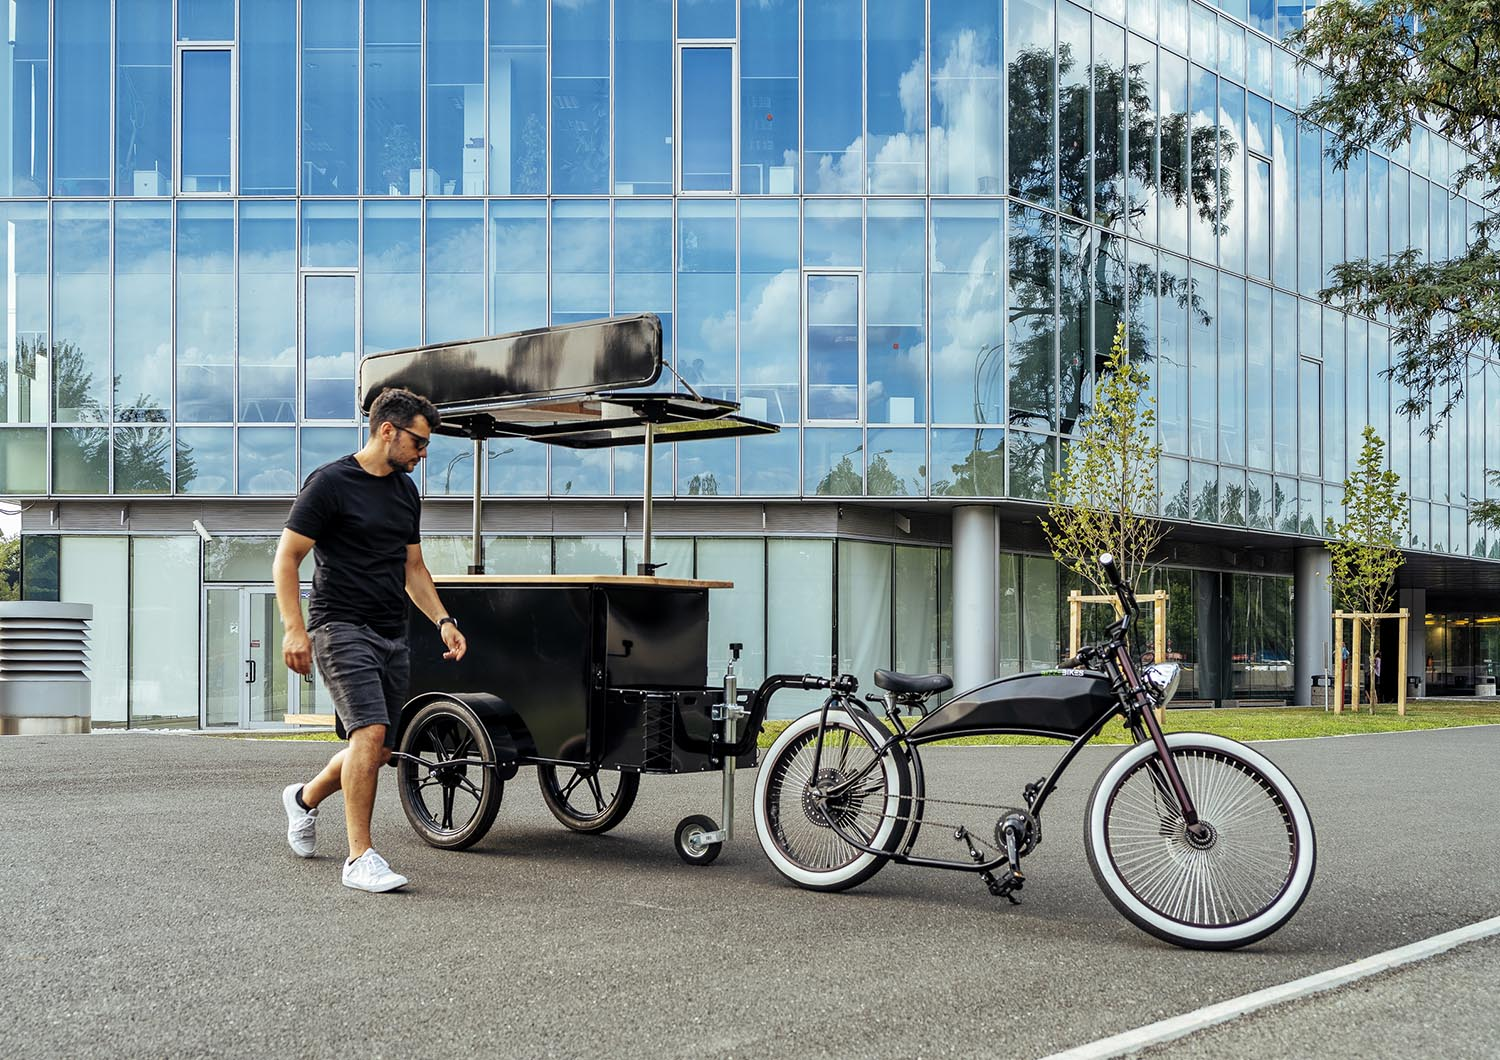 Bike towable food cart manufactured by BizzOnWheels